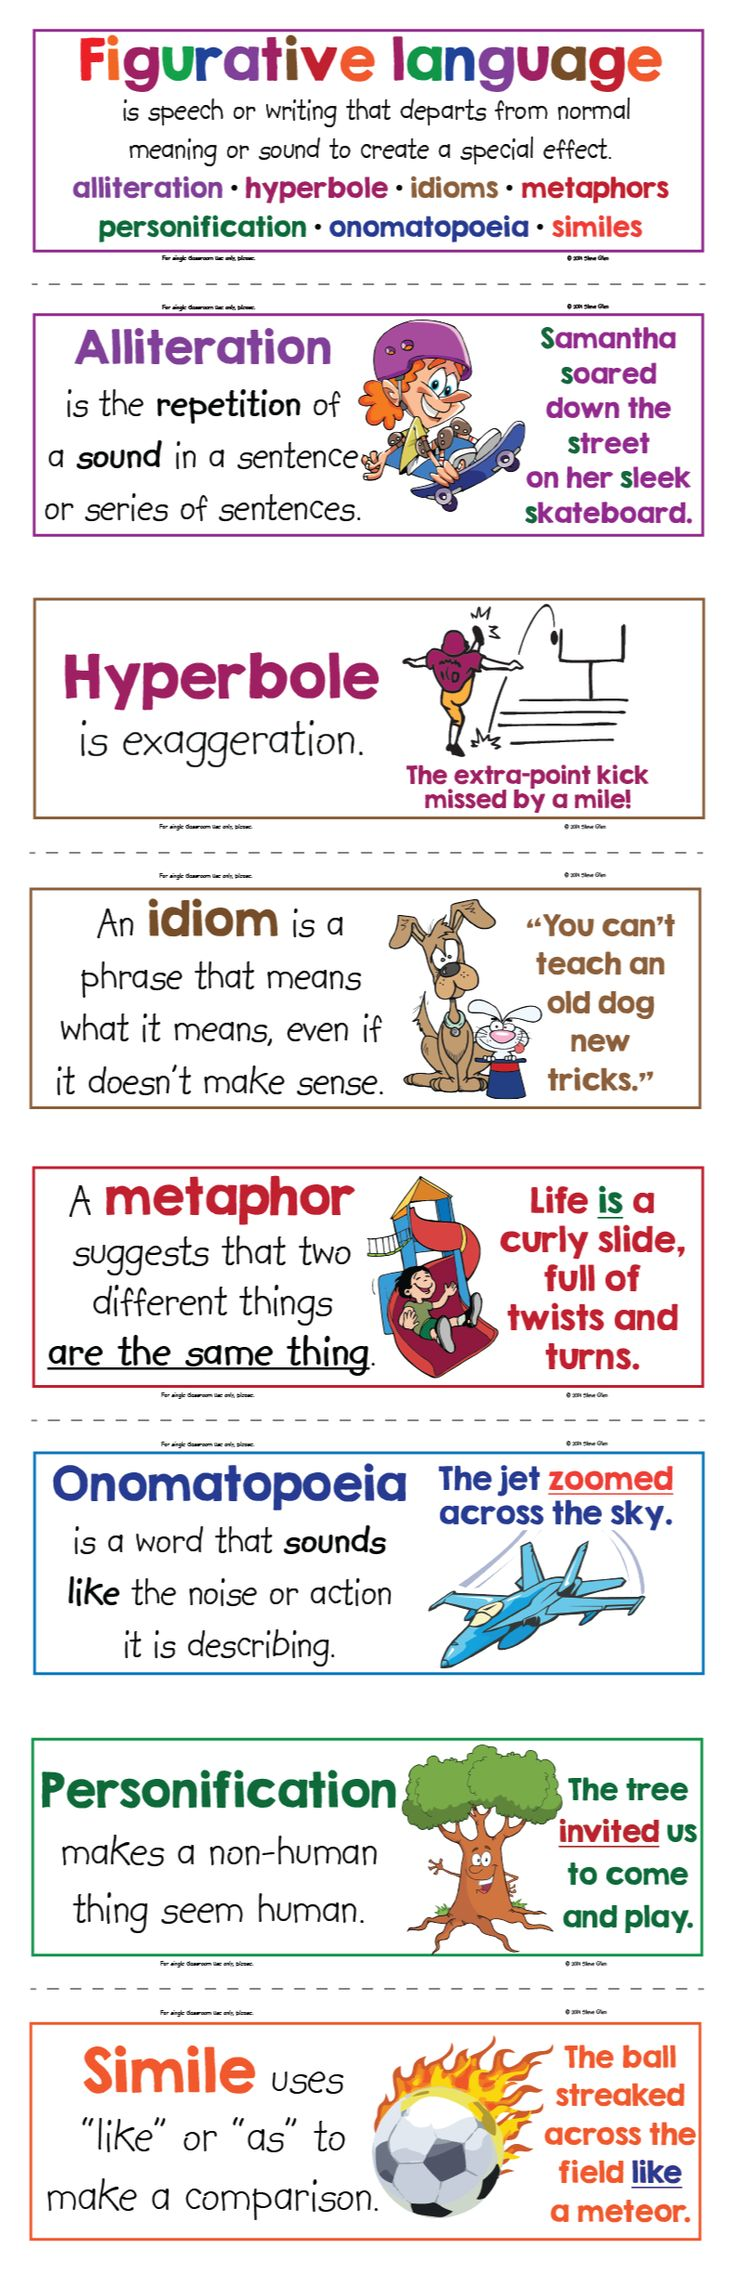 Free! Figurative language anchor word wall cards. Hyperbole, personification, alliteration, metaphor, simile, idioms, & more. For a quick, spontaneous ELA writing activity, I like to attach a few of these to the white board, give the students post-its, an instruct them to write an example of each and stick it on the board near the corresponding poster. If time permits, after every student has at least one on the board, they go get a random one and evaluate it.